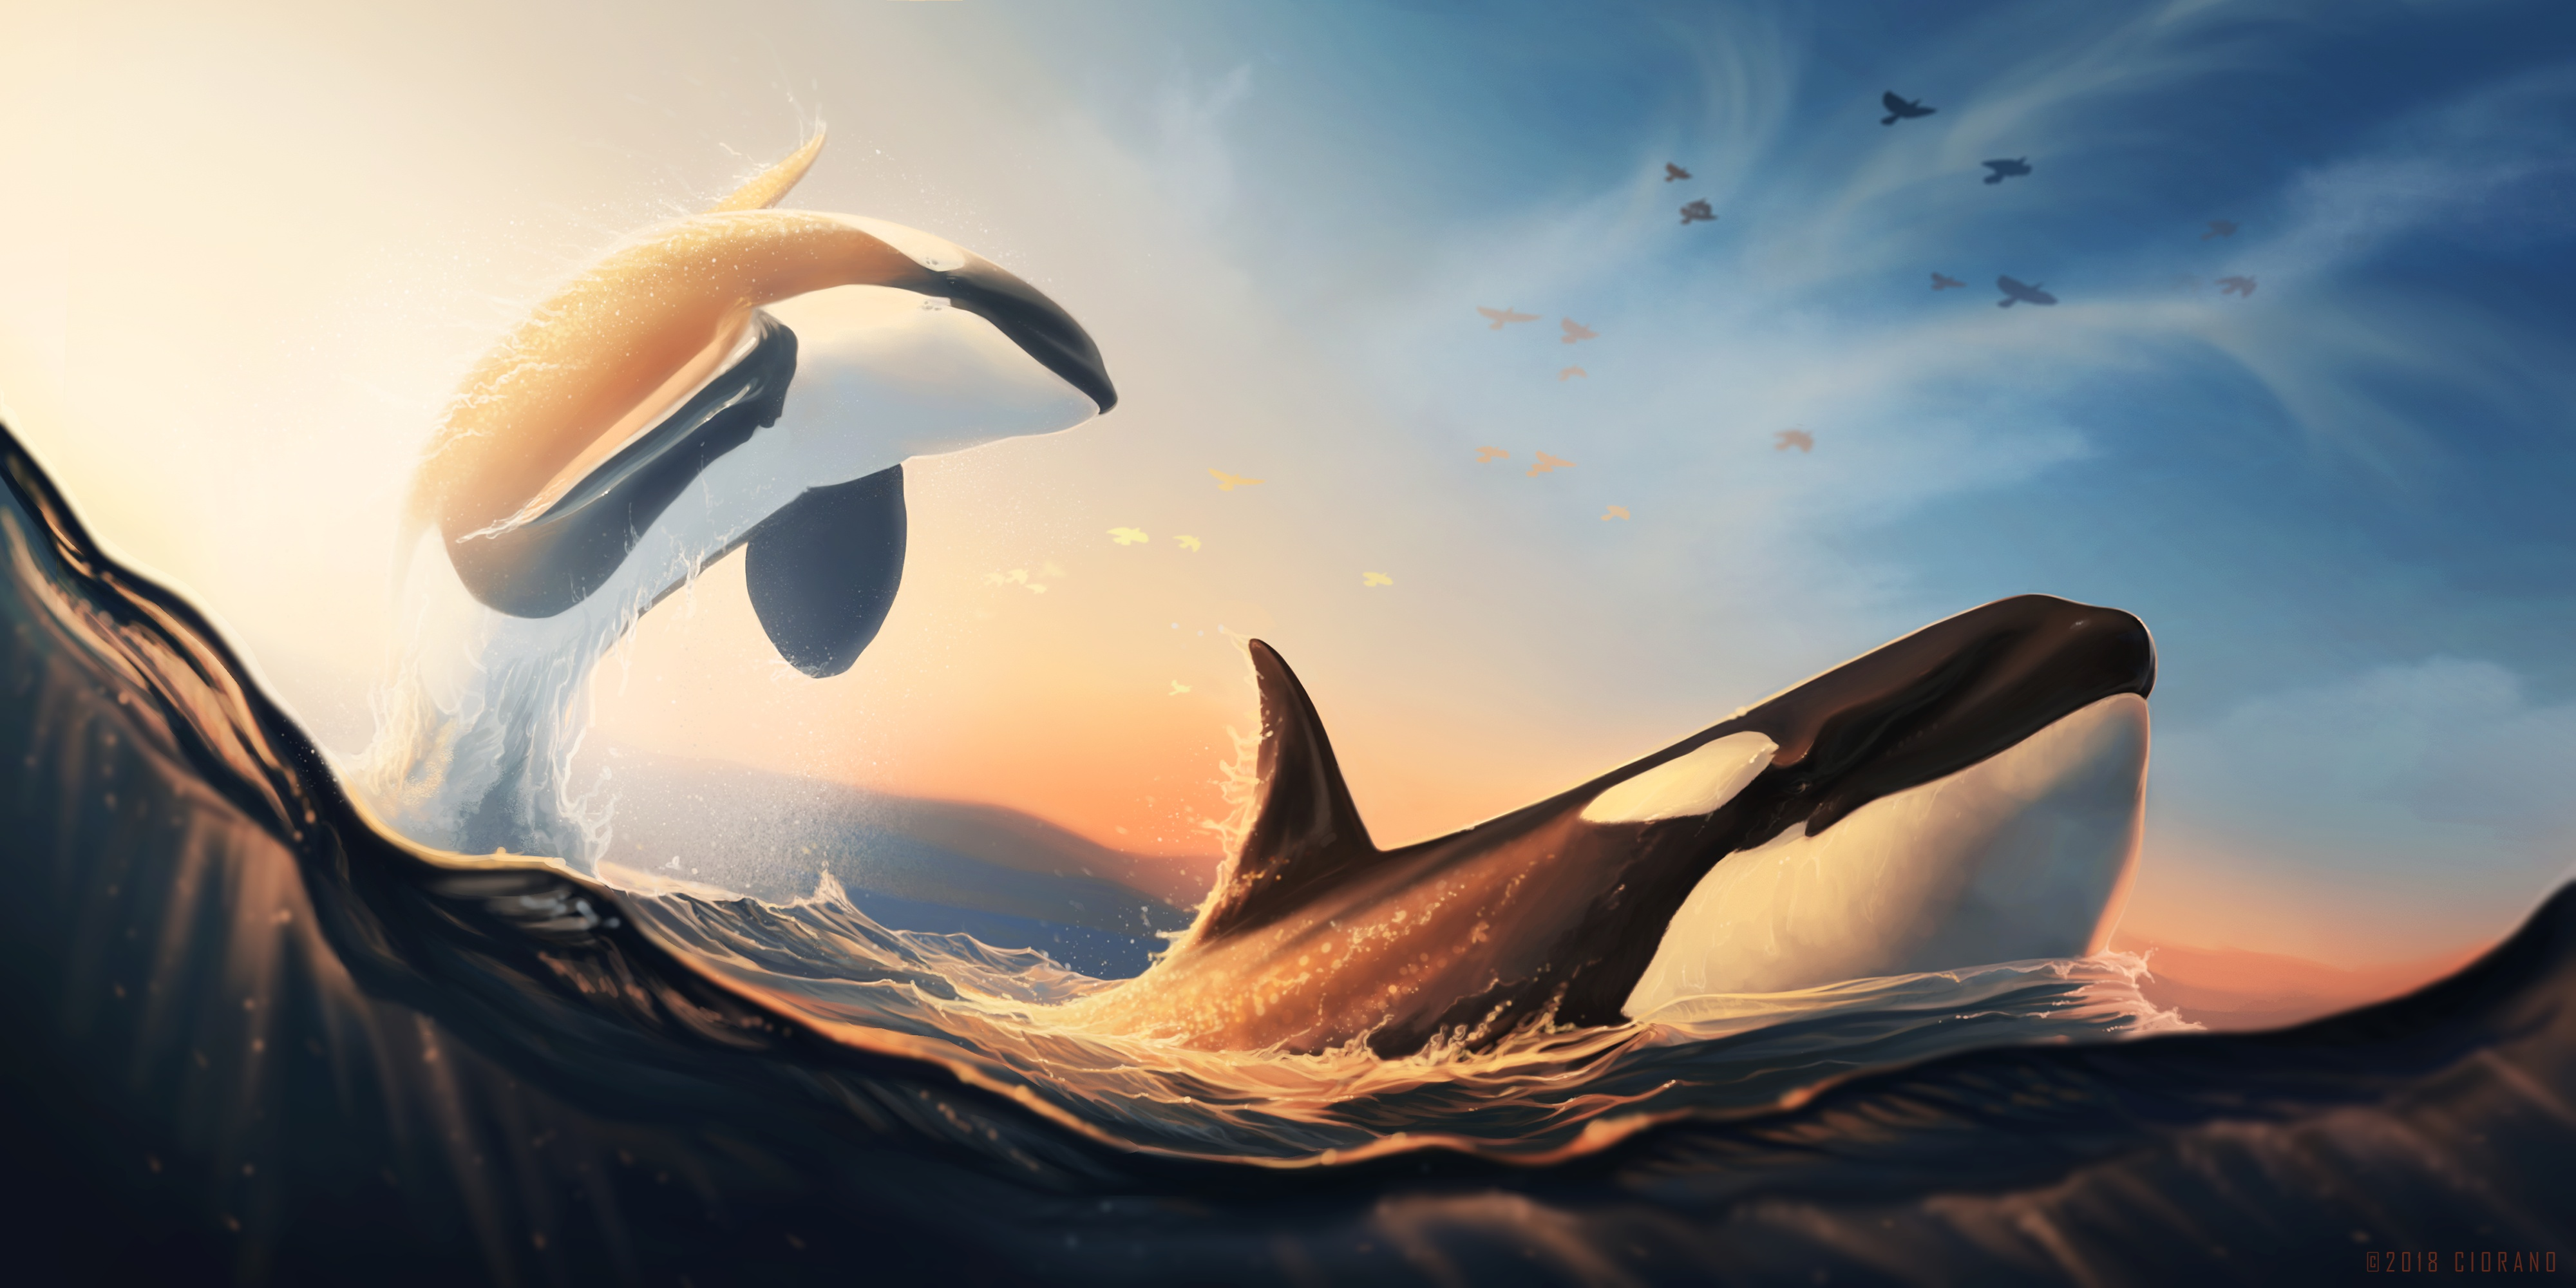 Wallpaper Whales jumping out of the water